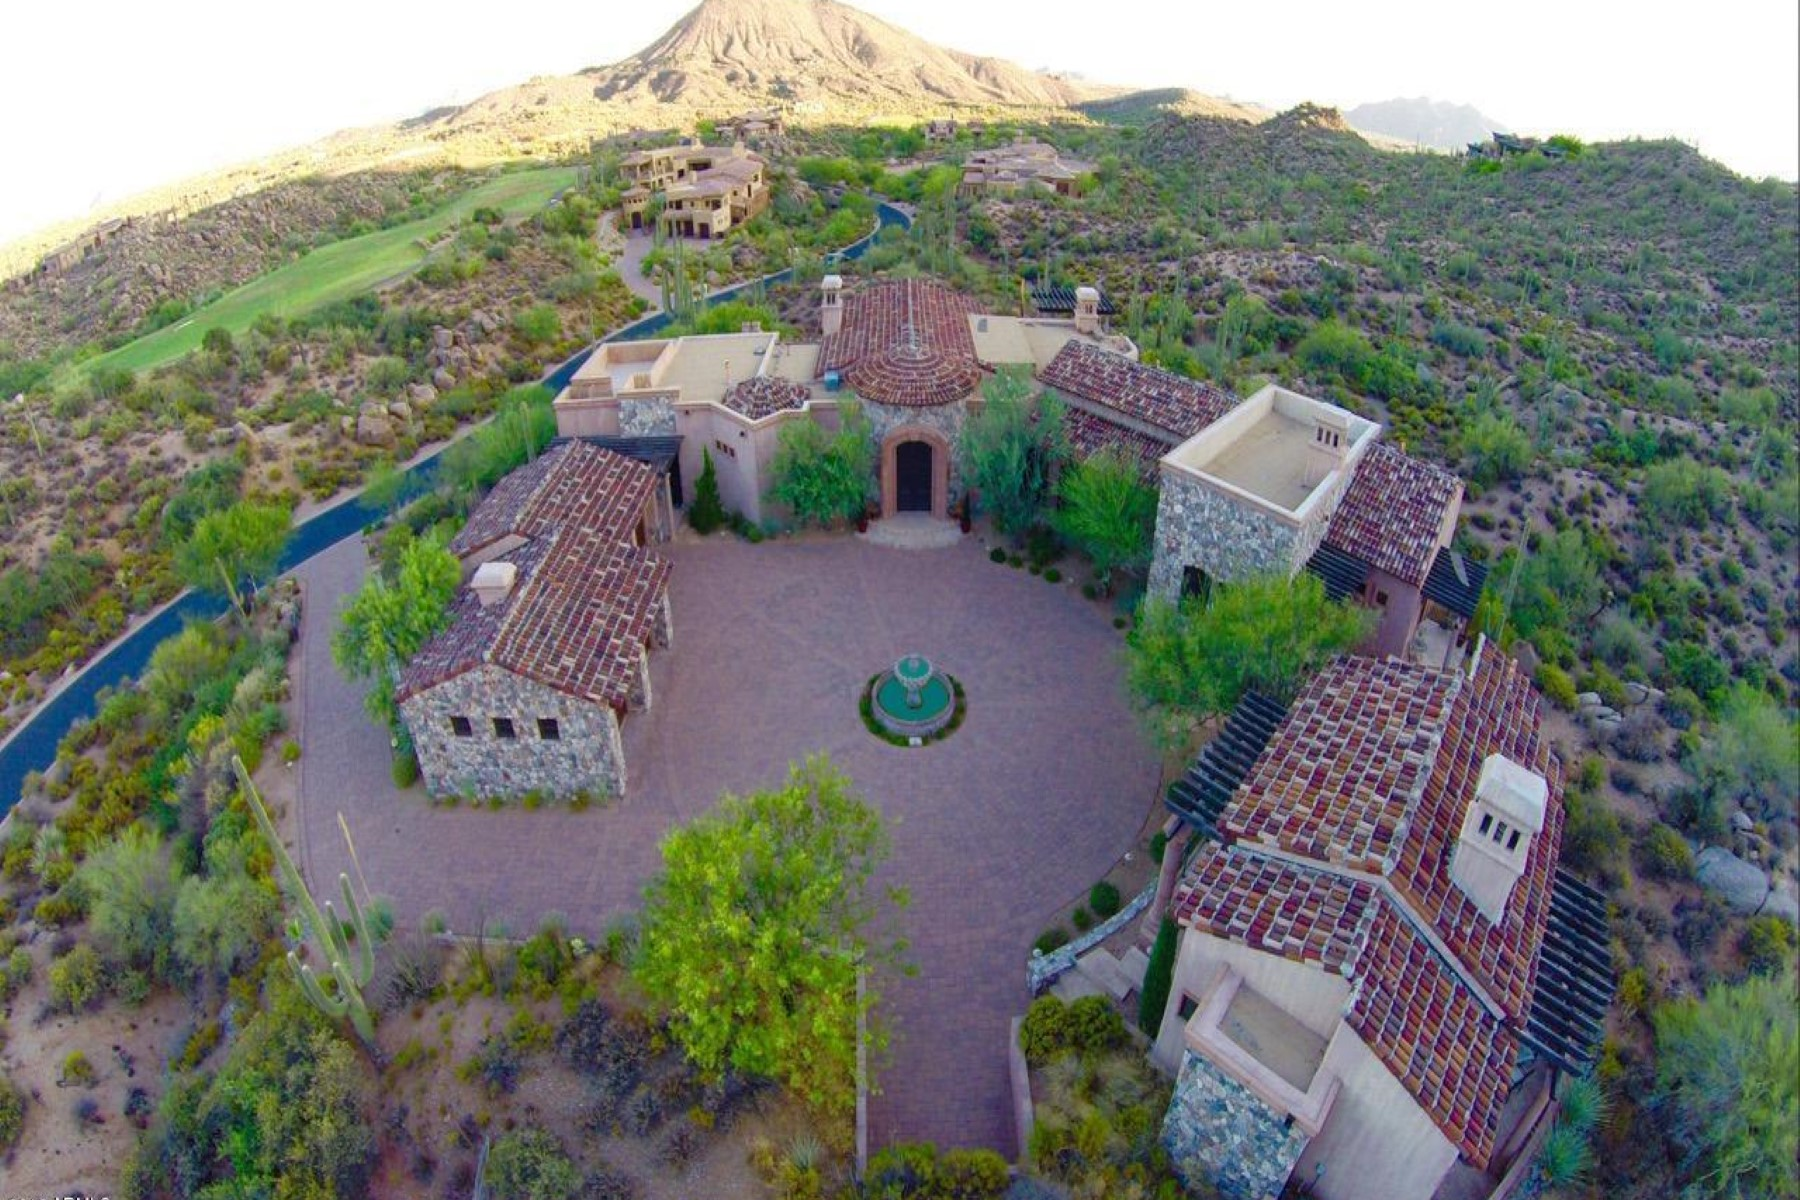 Single Family Home for Sale at Beautiful private Tuscan home is situated on 2.2 acres in Saguaro Forest 41324 N 95th Street Scottsdale, Arizona, 85262 United States